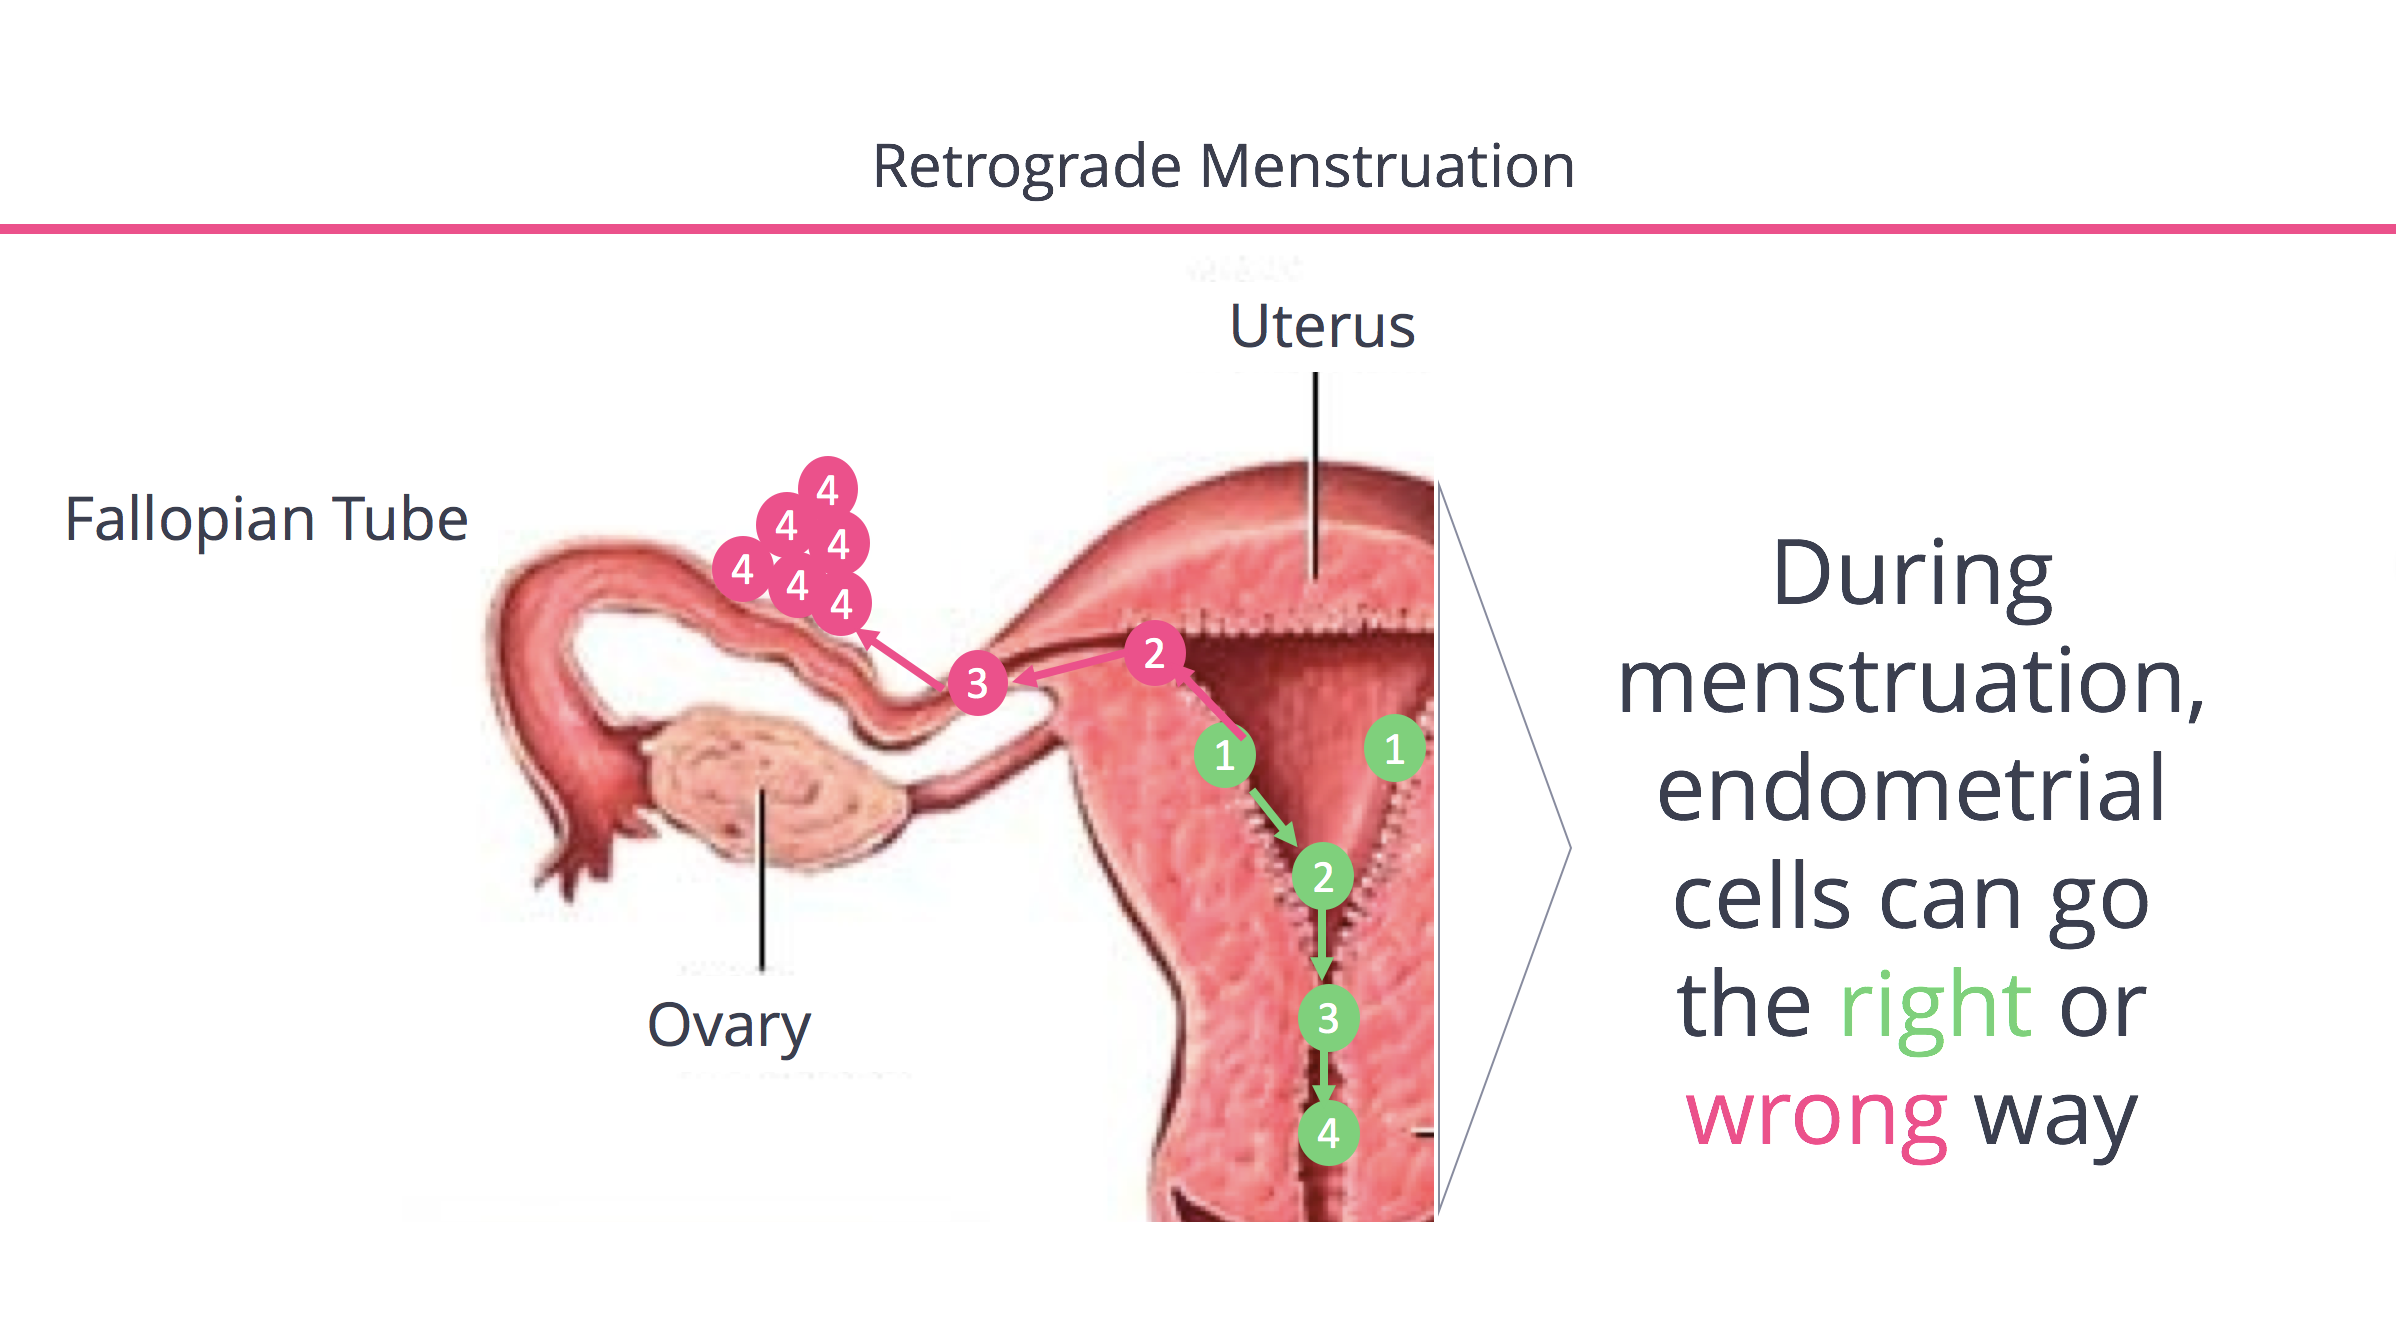 Endometriosis From Retrograde Menstruation